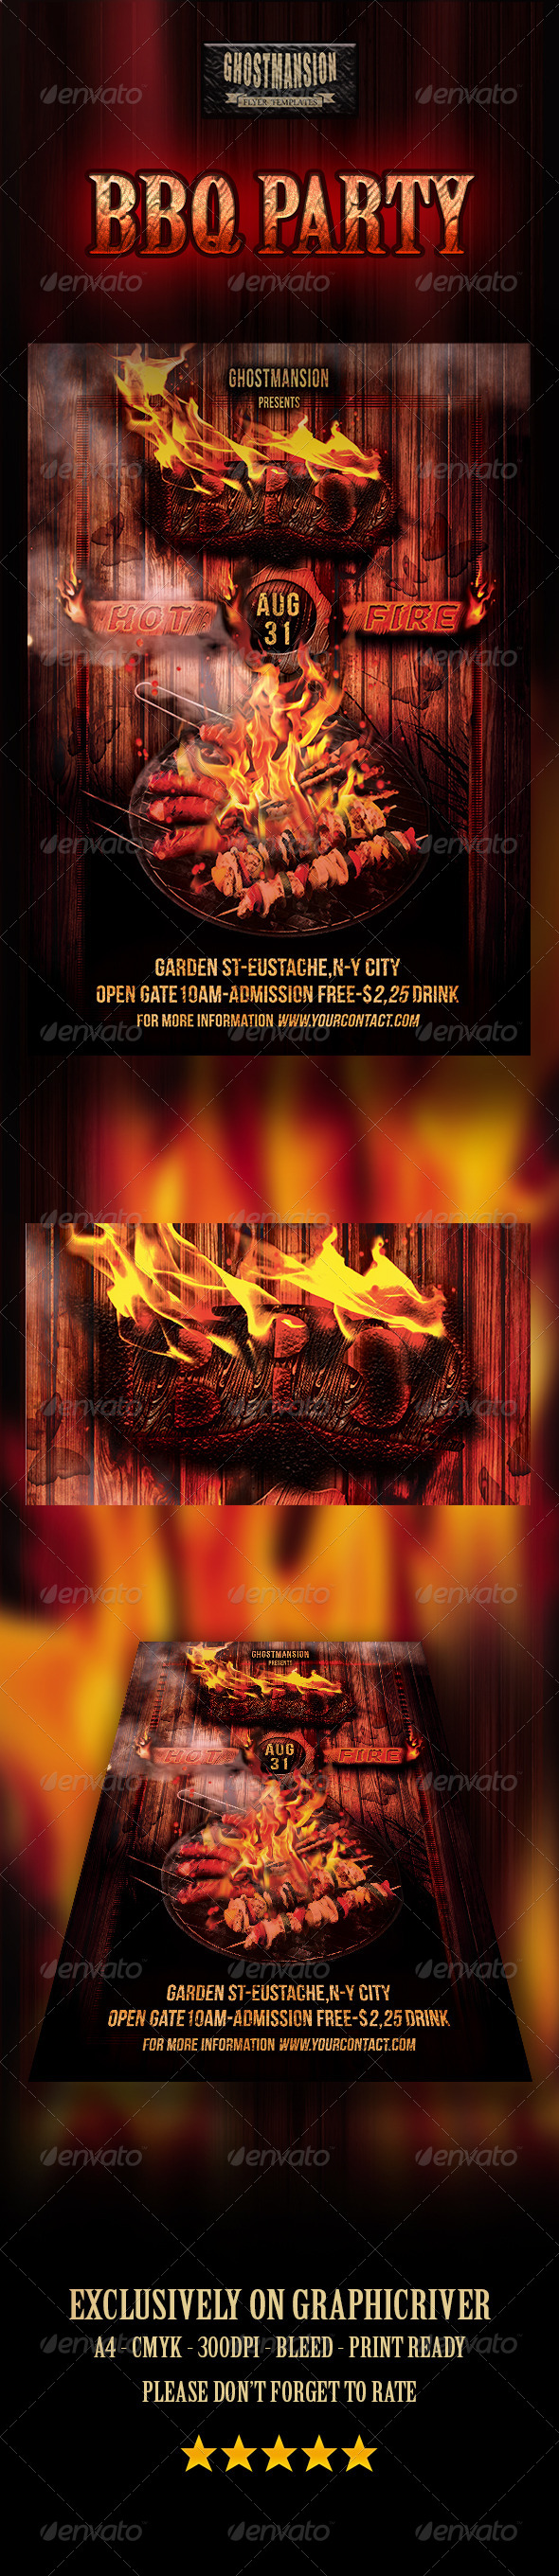 GraphicRiver BBQ Party Flyer Template 8247082